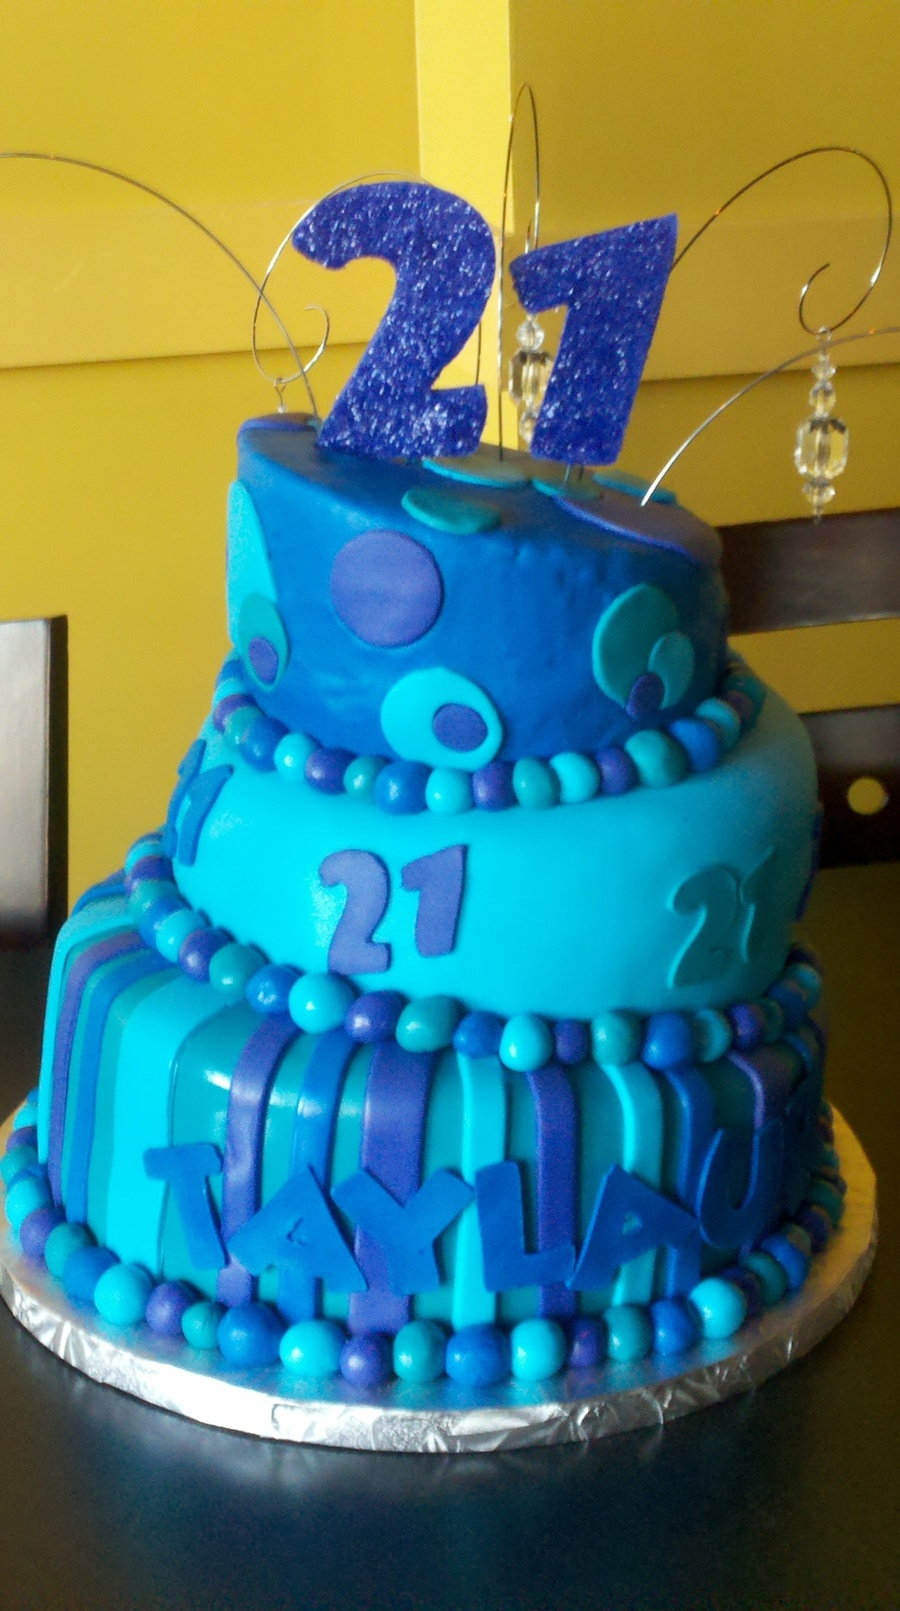 21St Topsy Turvy on Cake Central